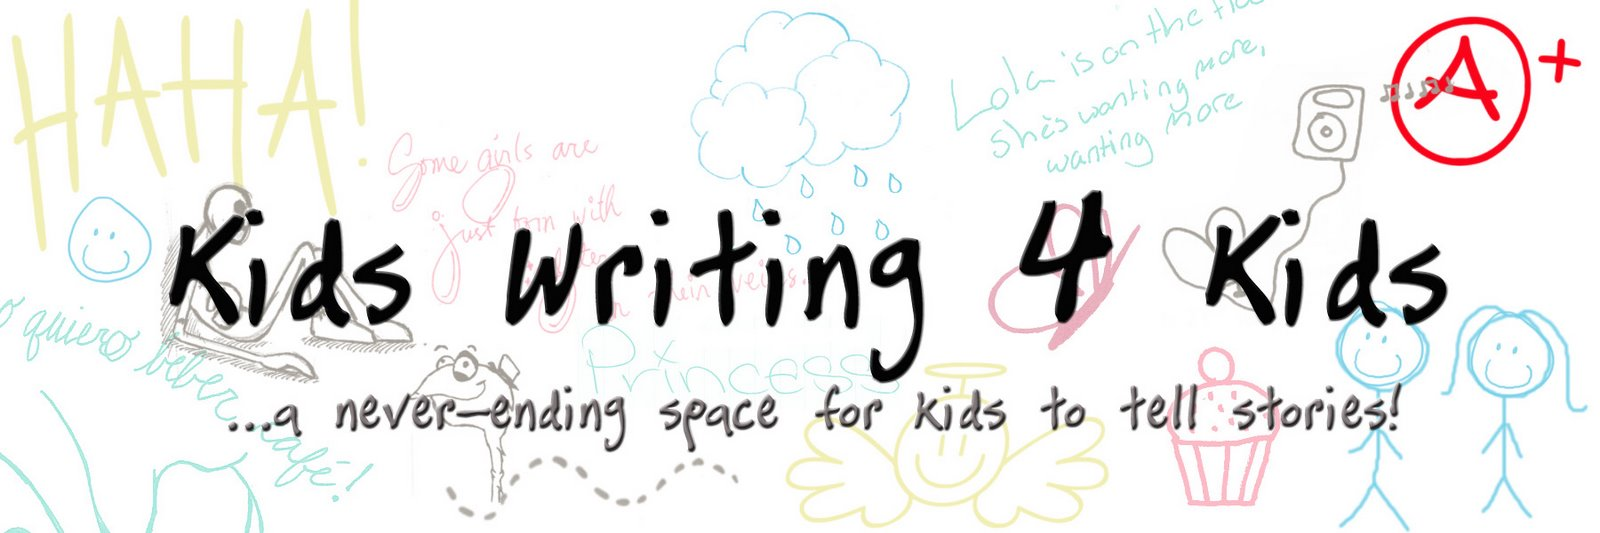 Kids Writing for Kids